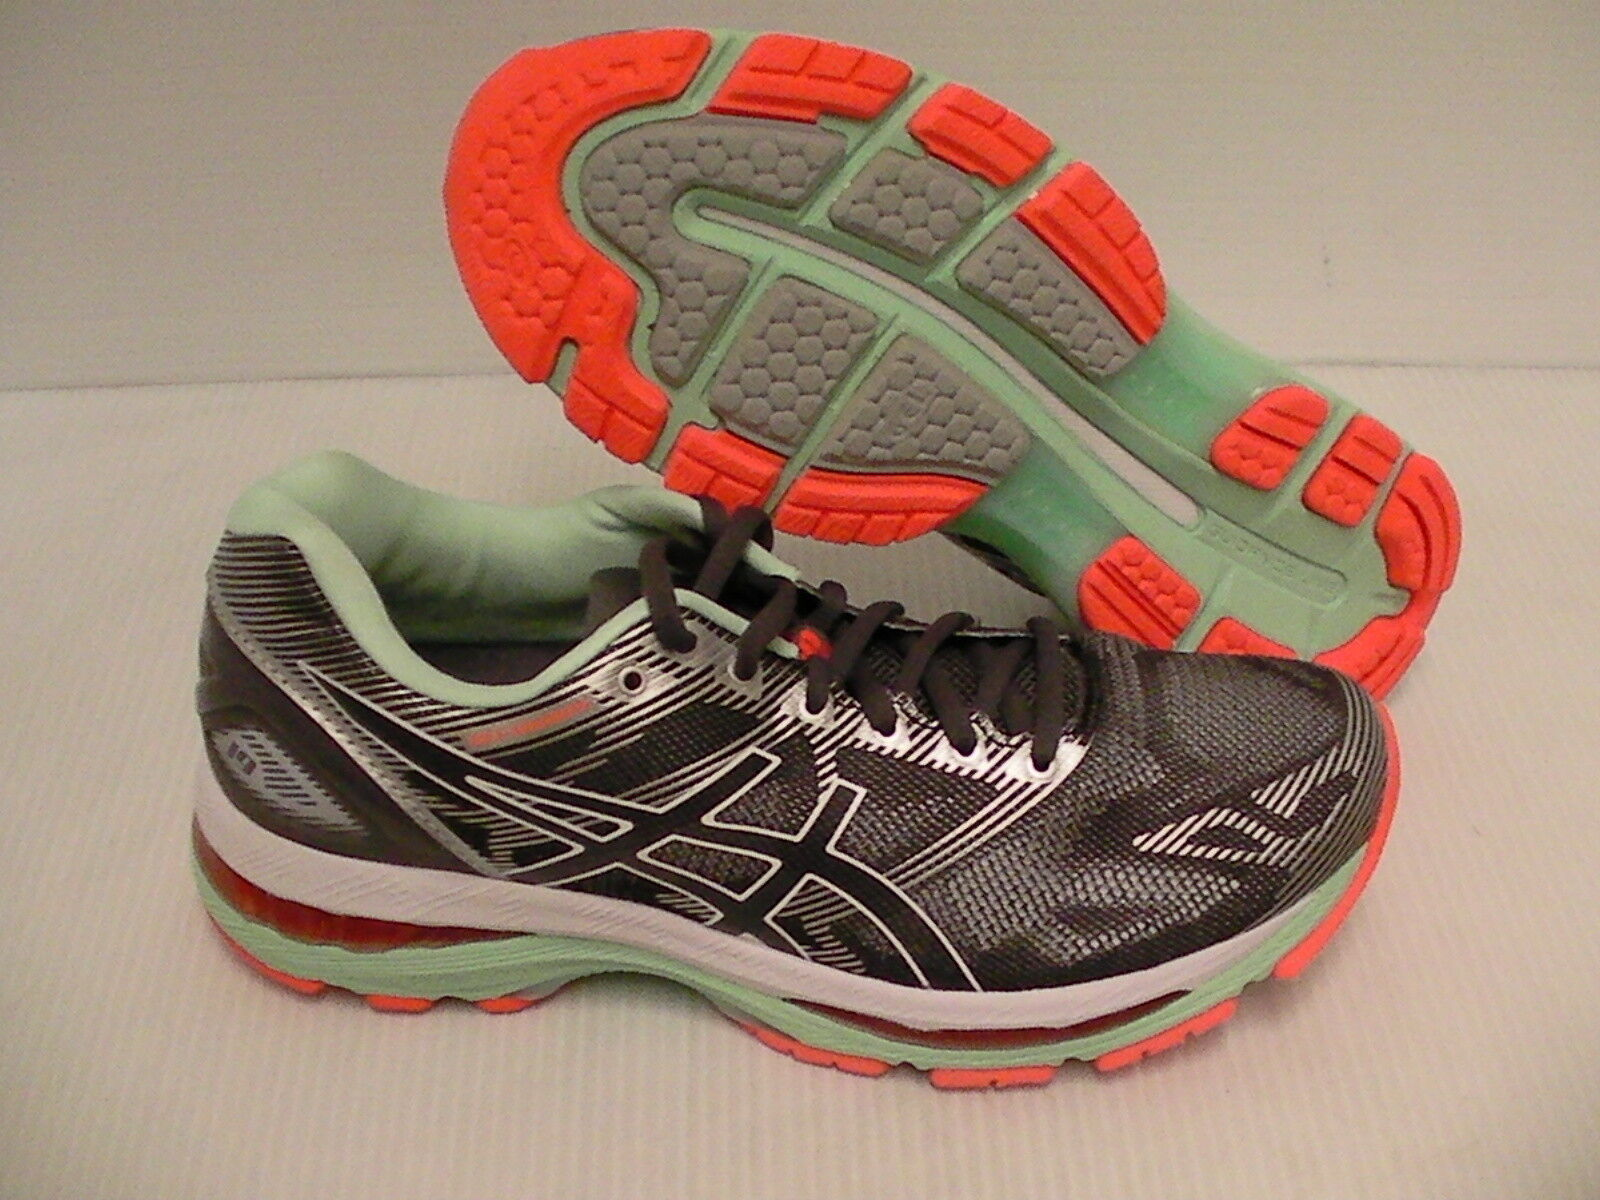 Asics women's gel nimbus 19 running shoes carbon white flash coral size 8.5 us